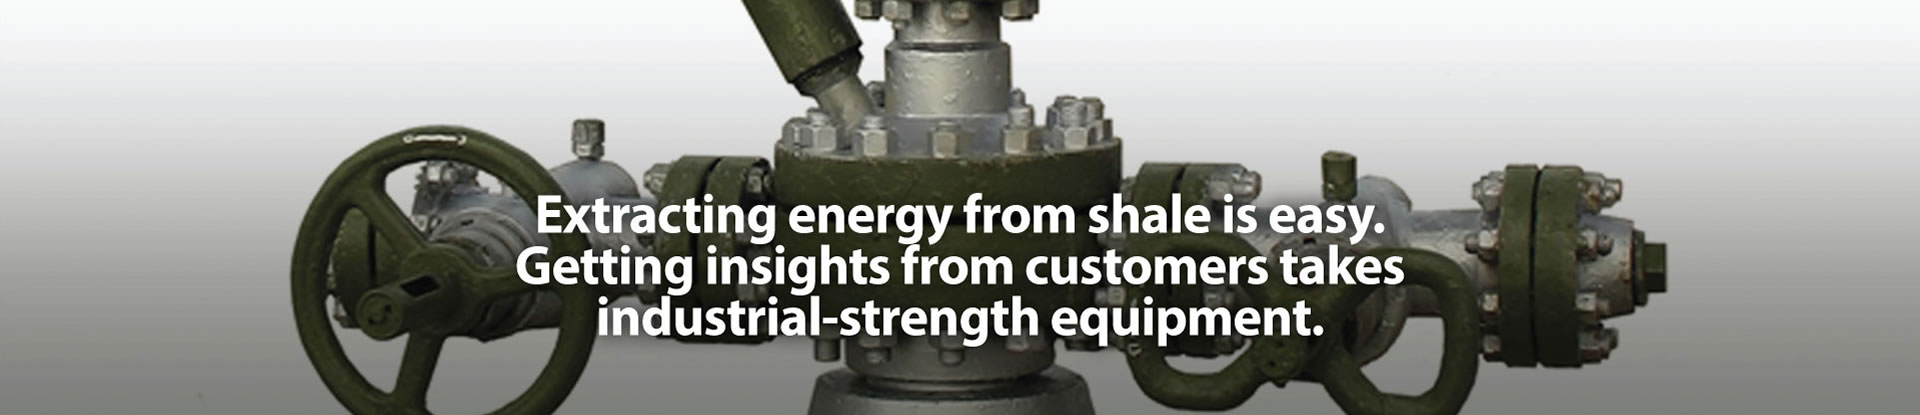 Extracting energy from shale is easy.